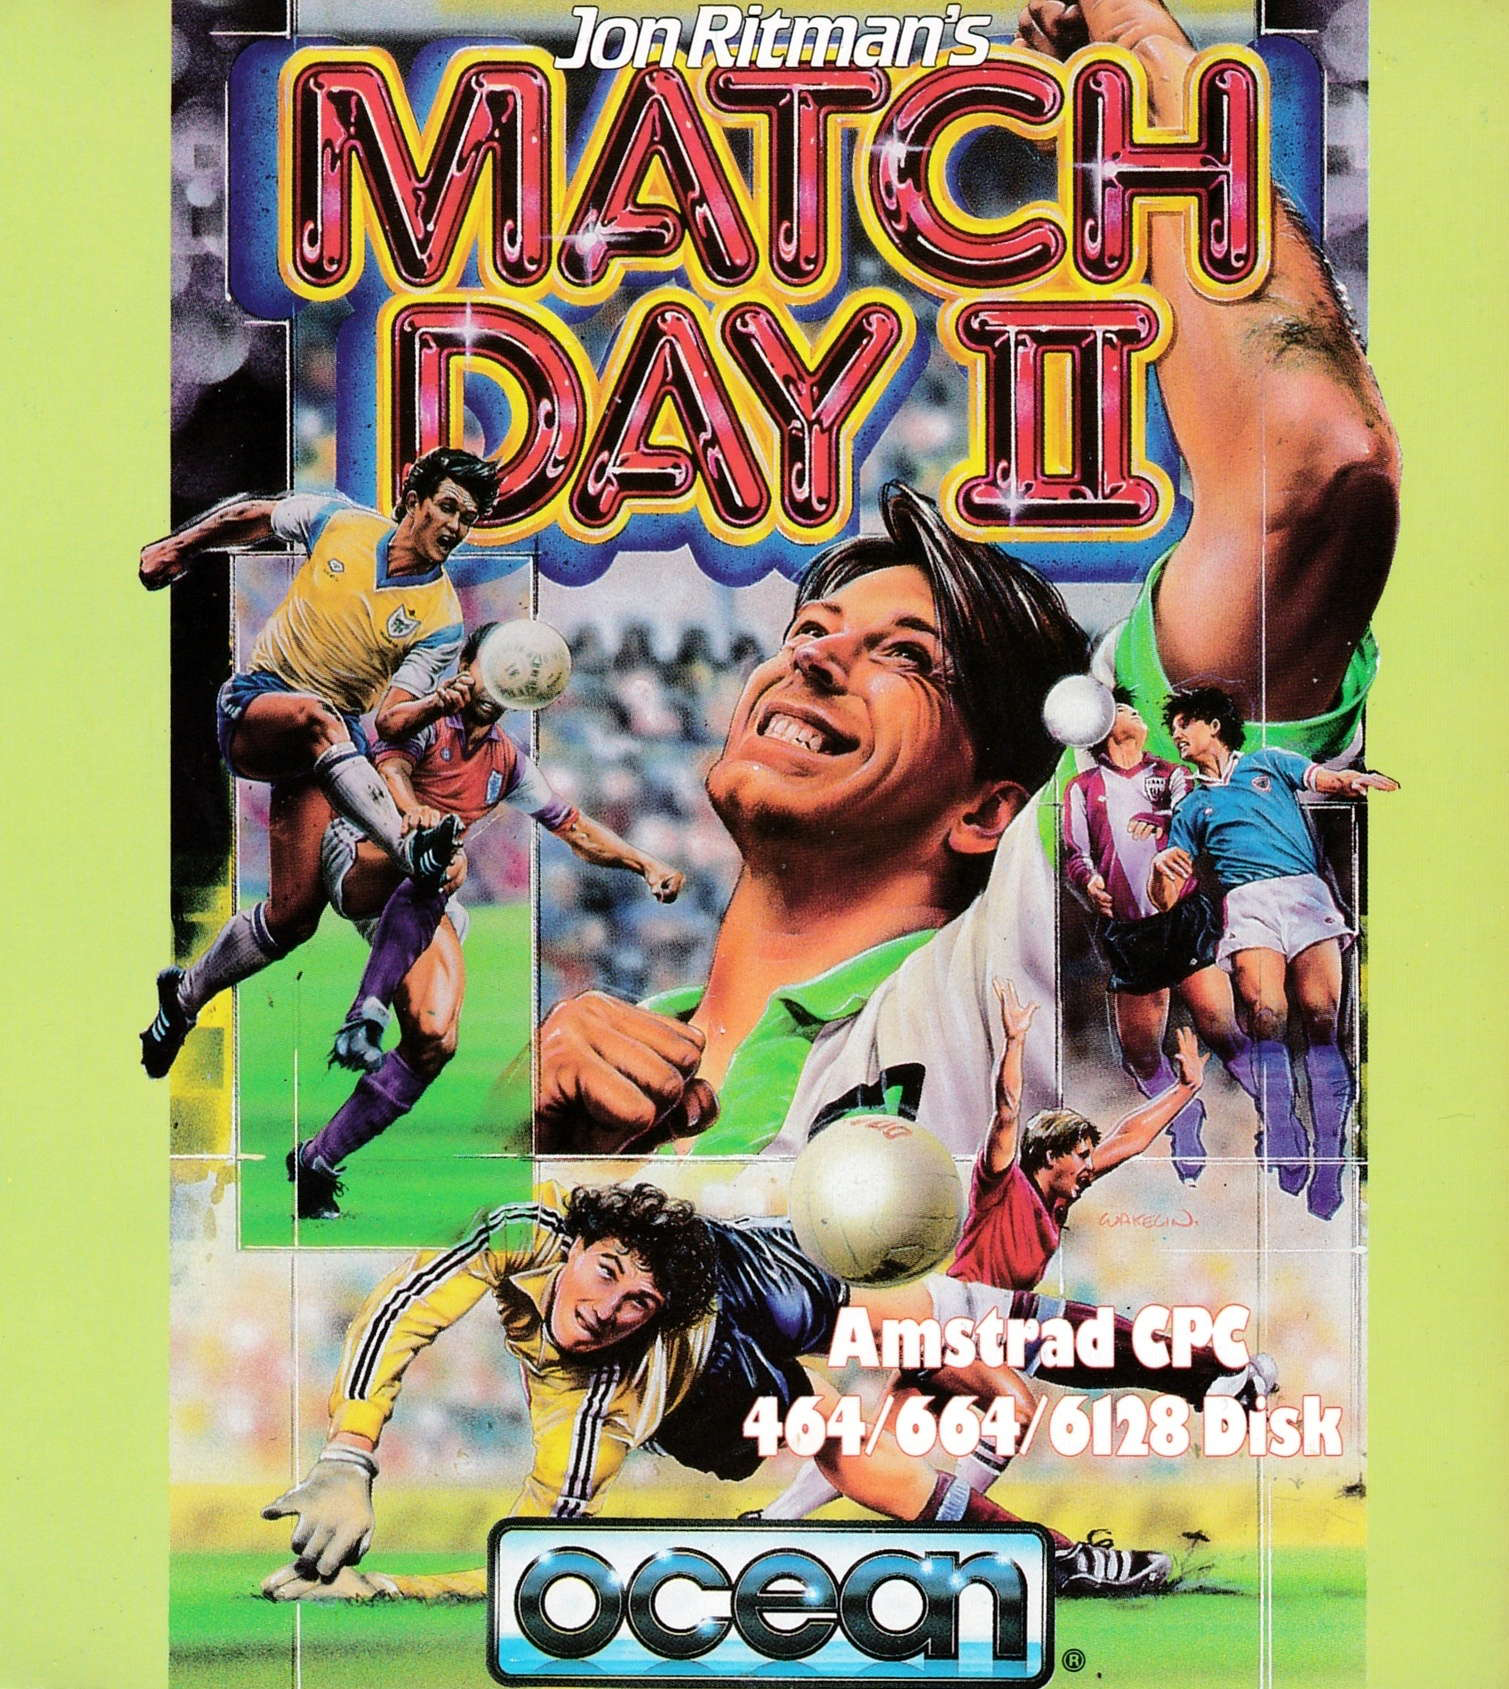 cover of the Amstrad CPC game Match Day II  by GameBase CPC